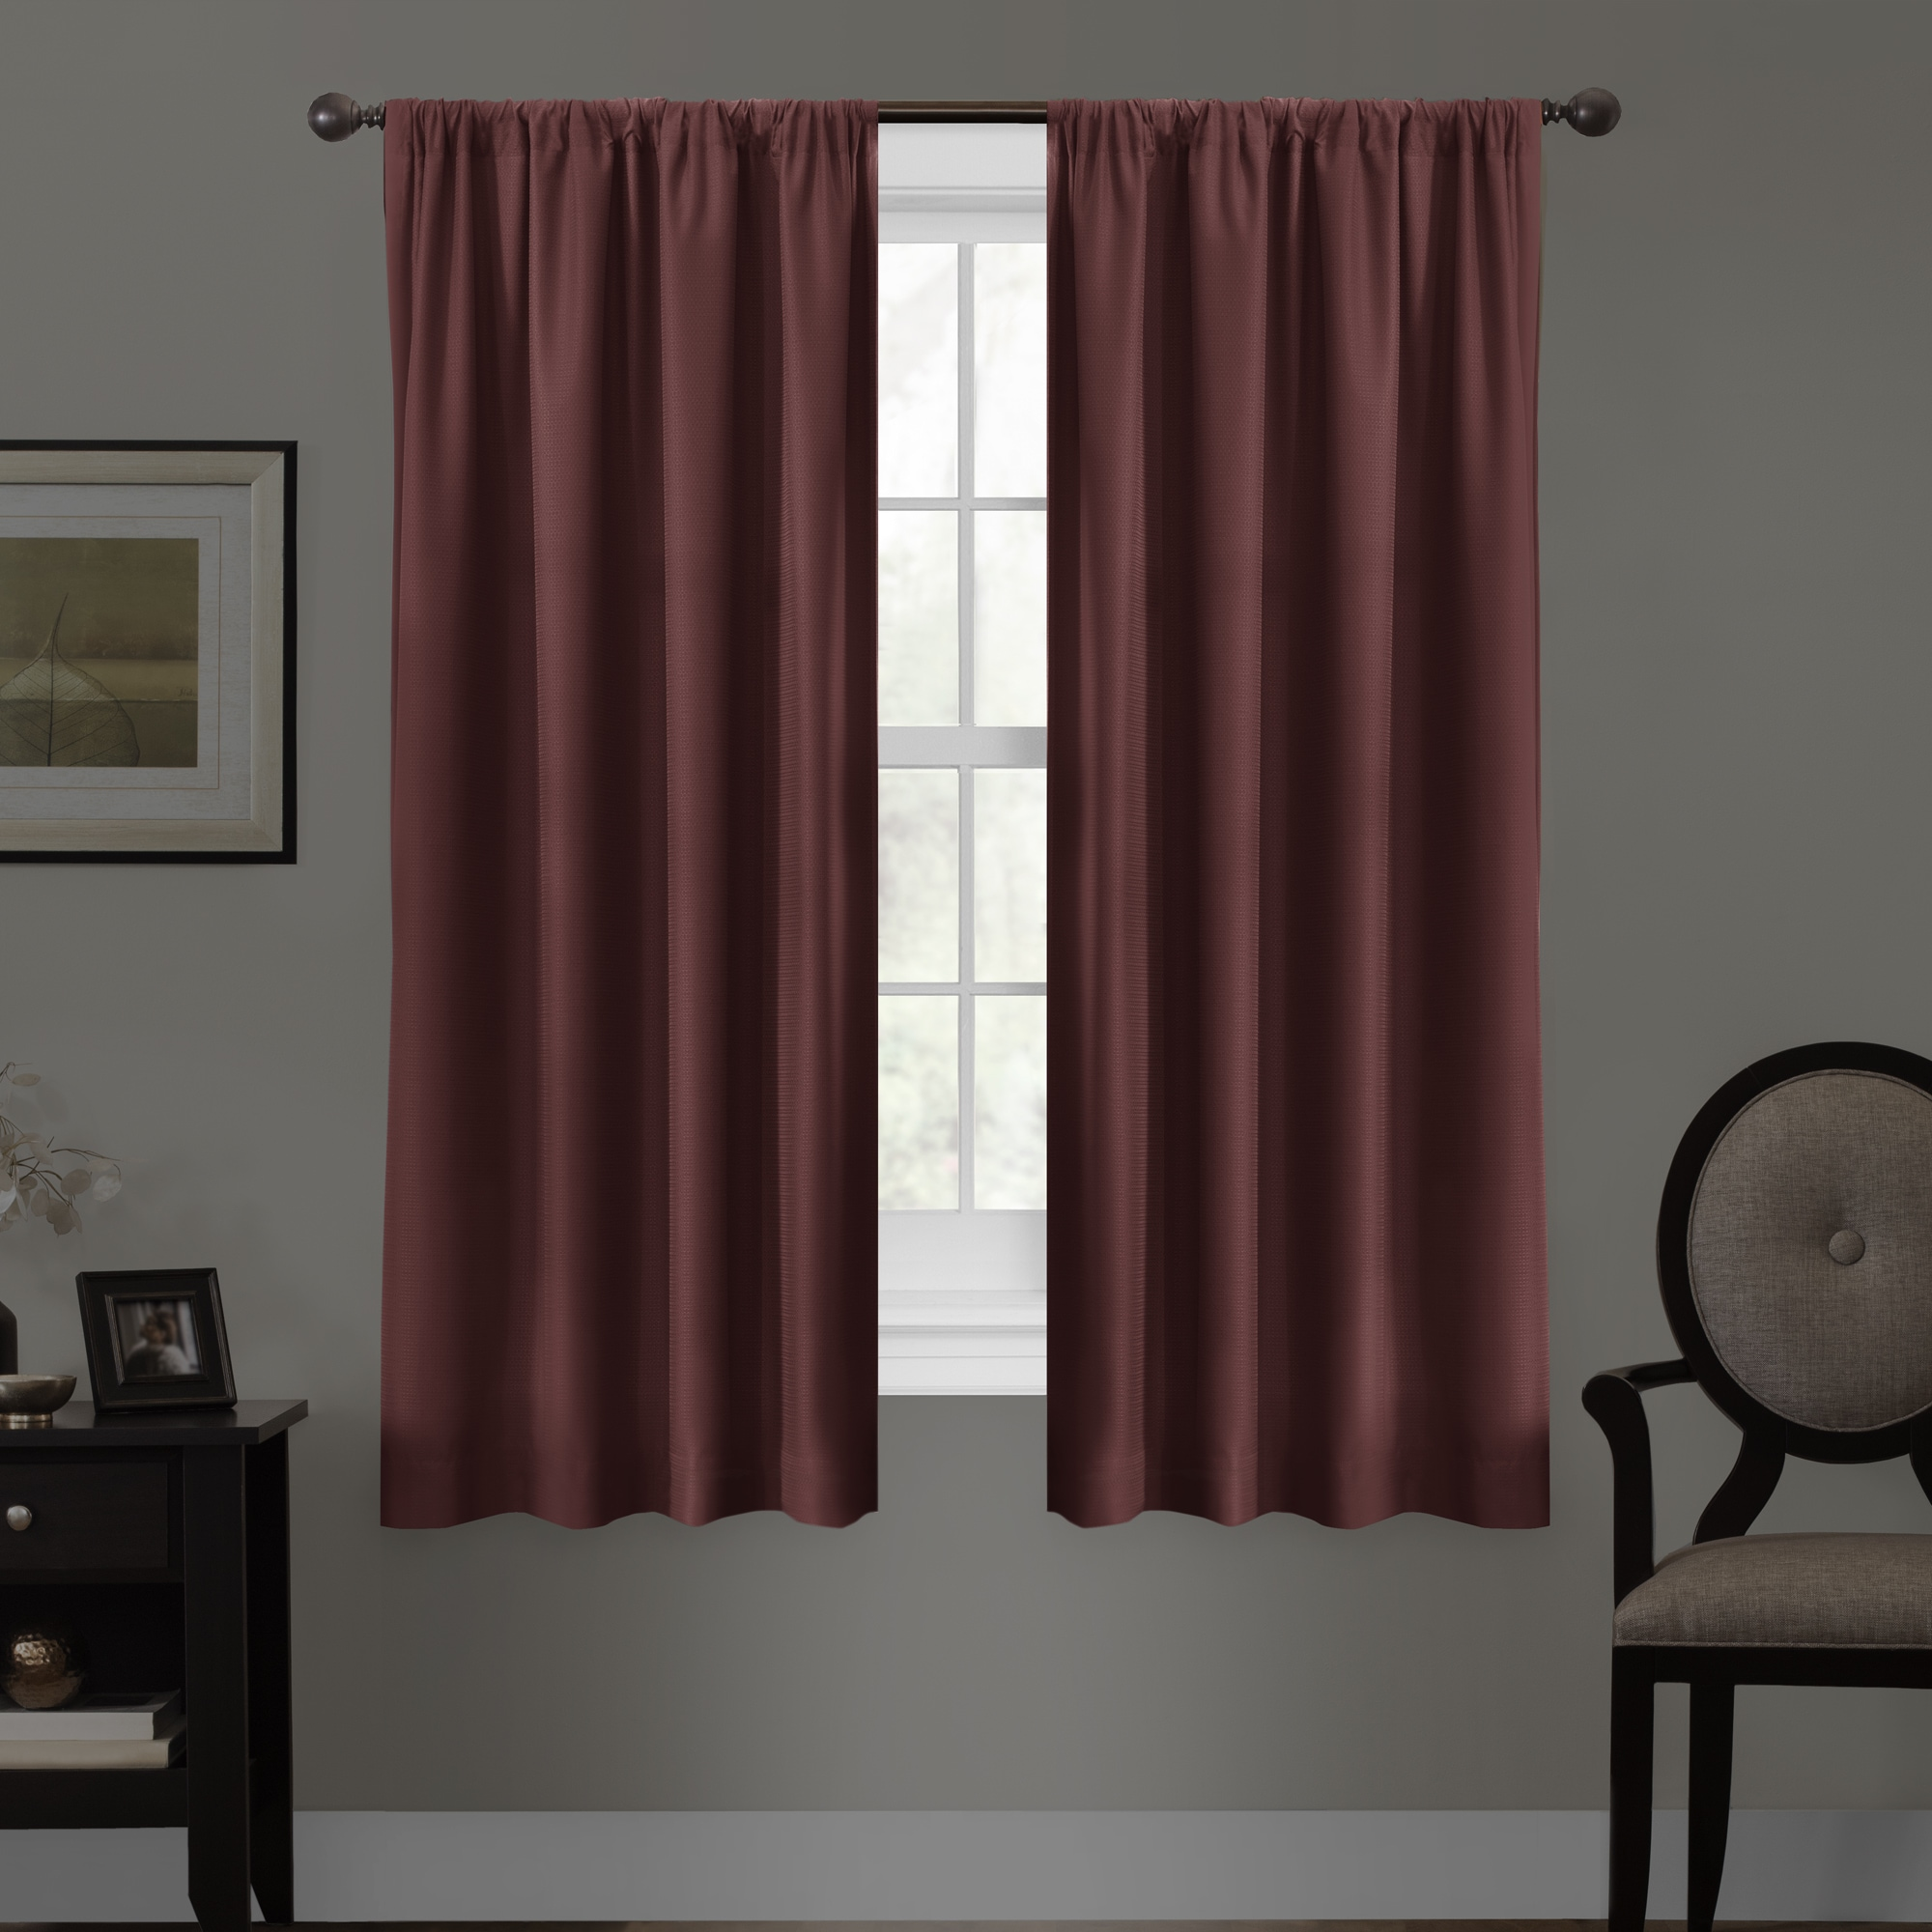 curtains curtain long window length inches treatments best inch